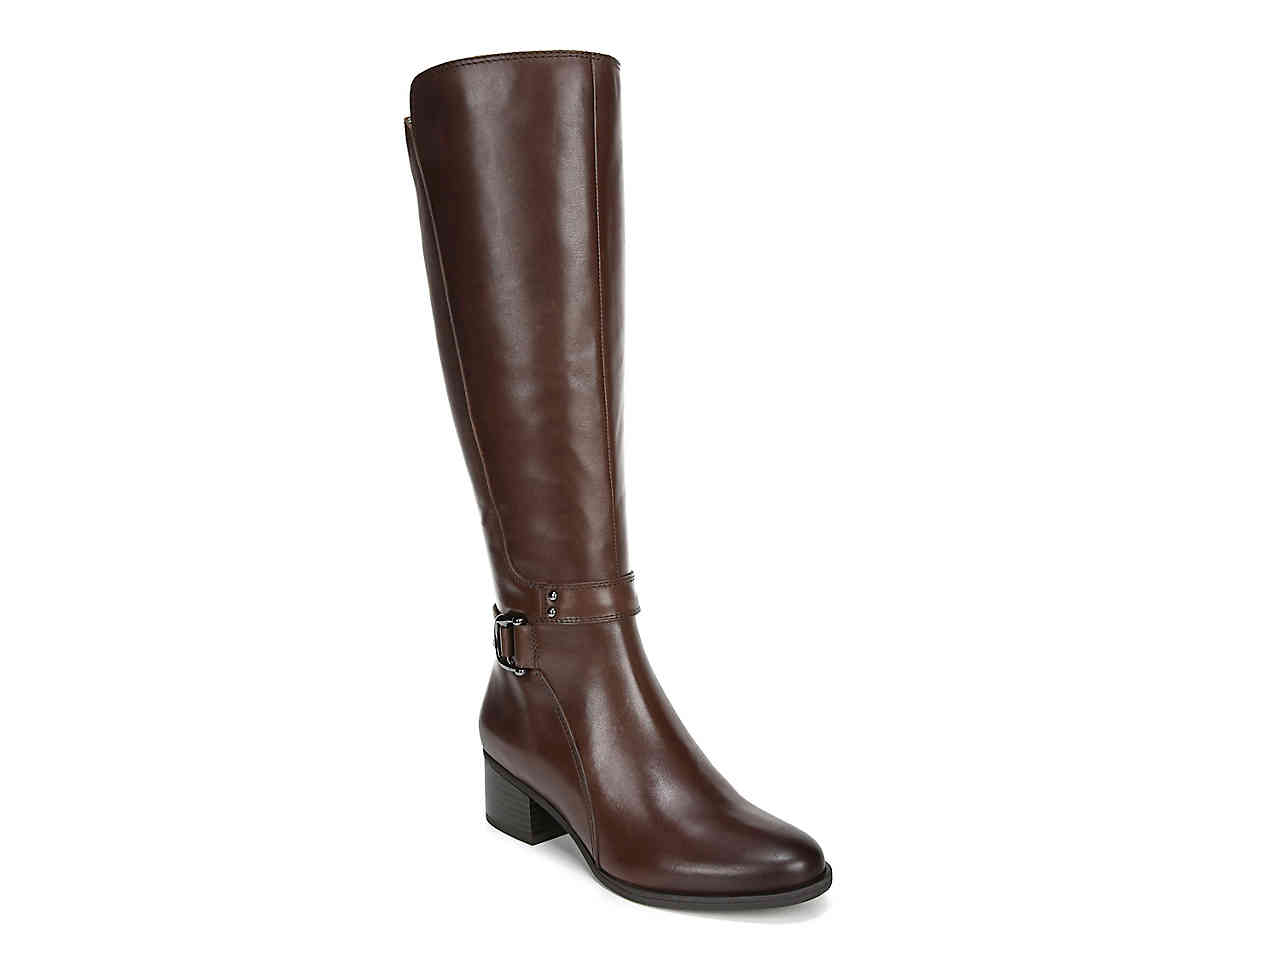 riding boot, Naturalizer